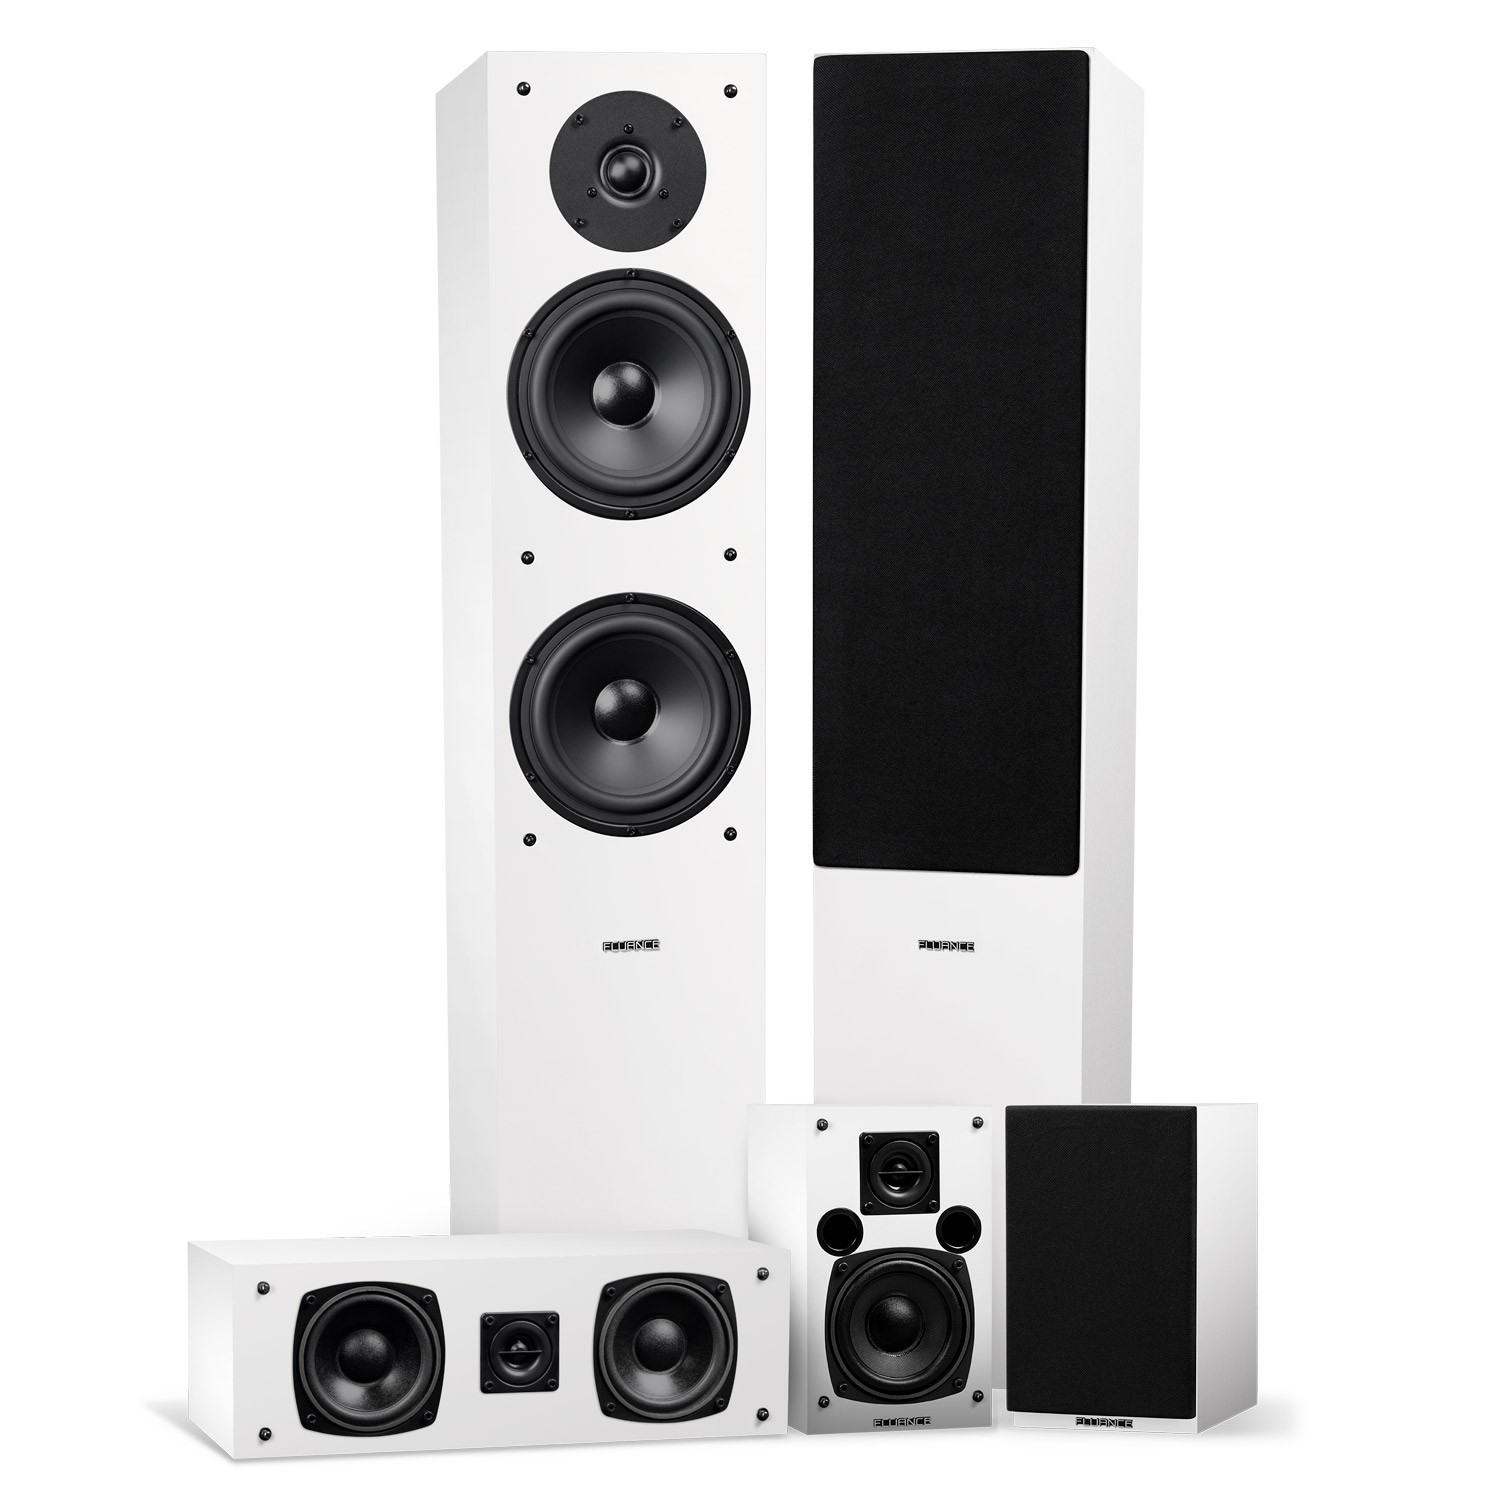 Elite Series Surround Sound Home Theater 5.0 Channel Speaker System